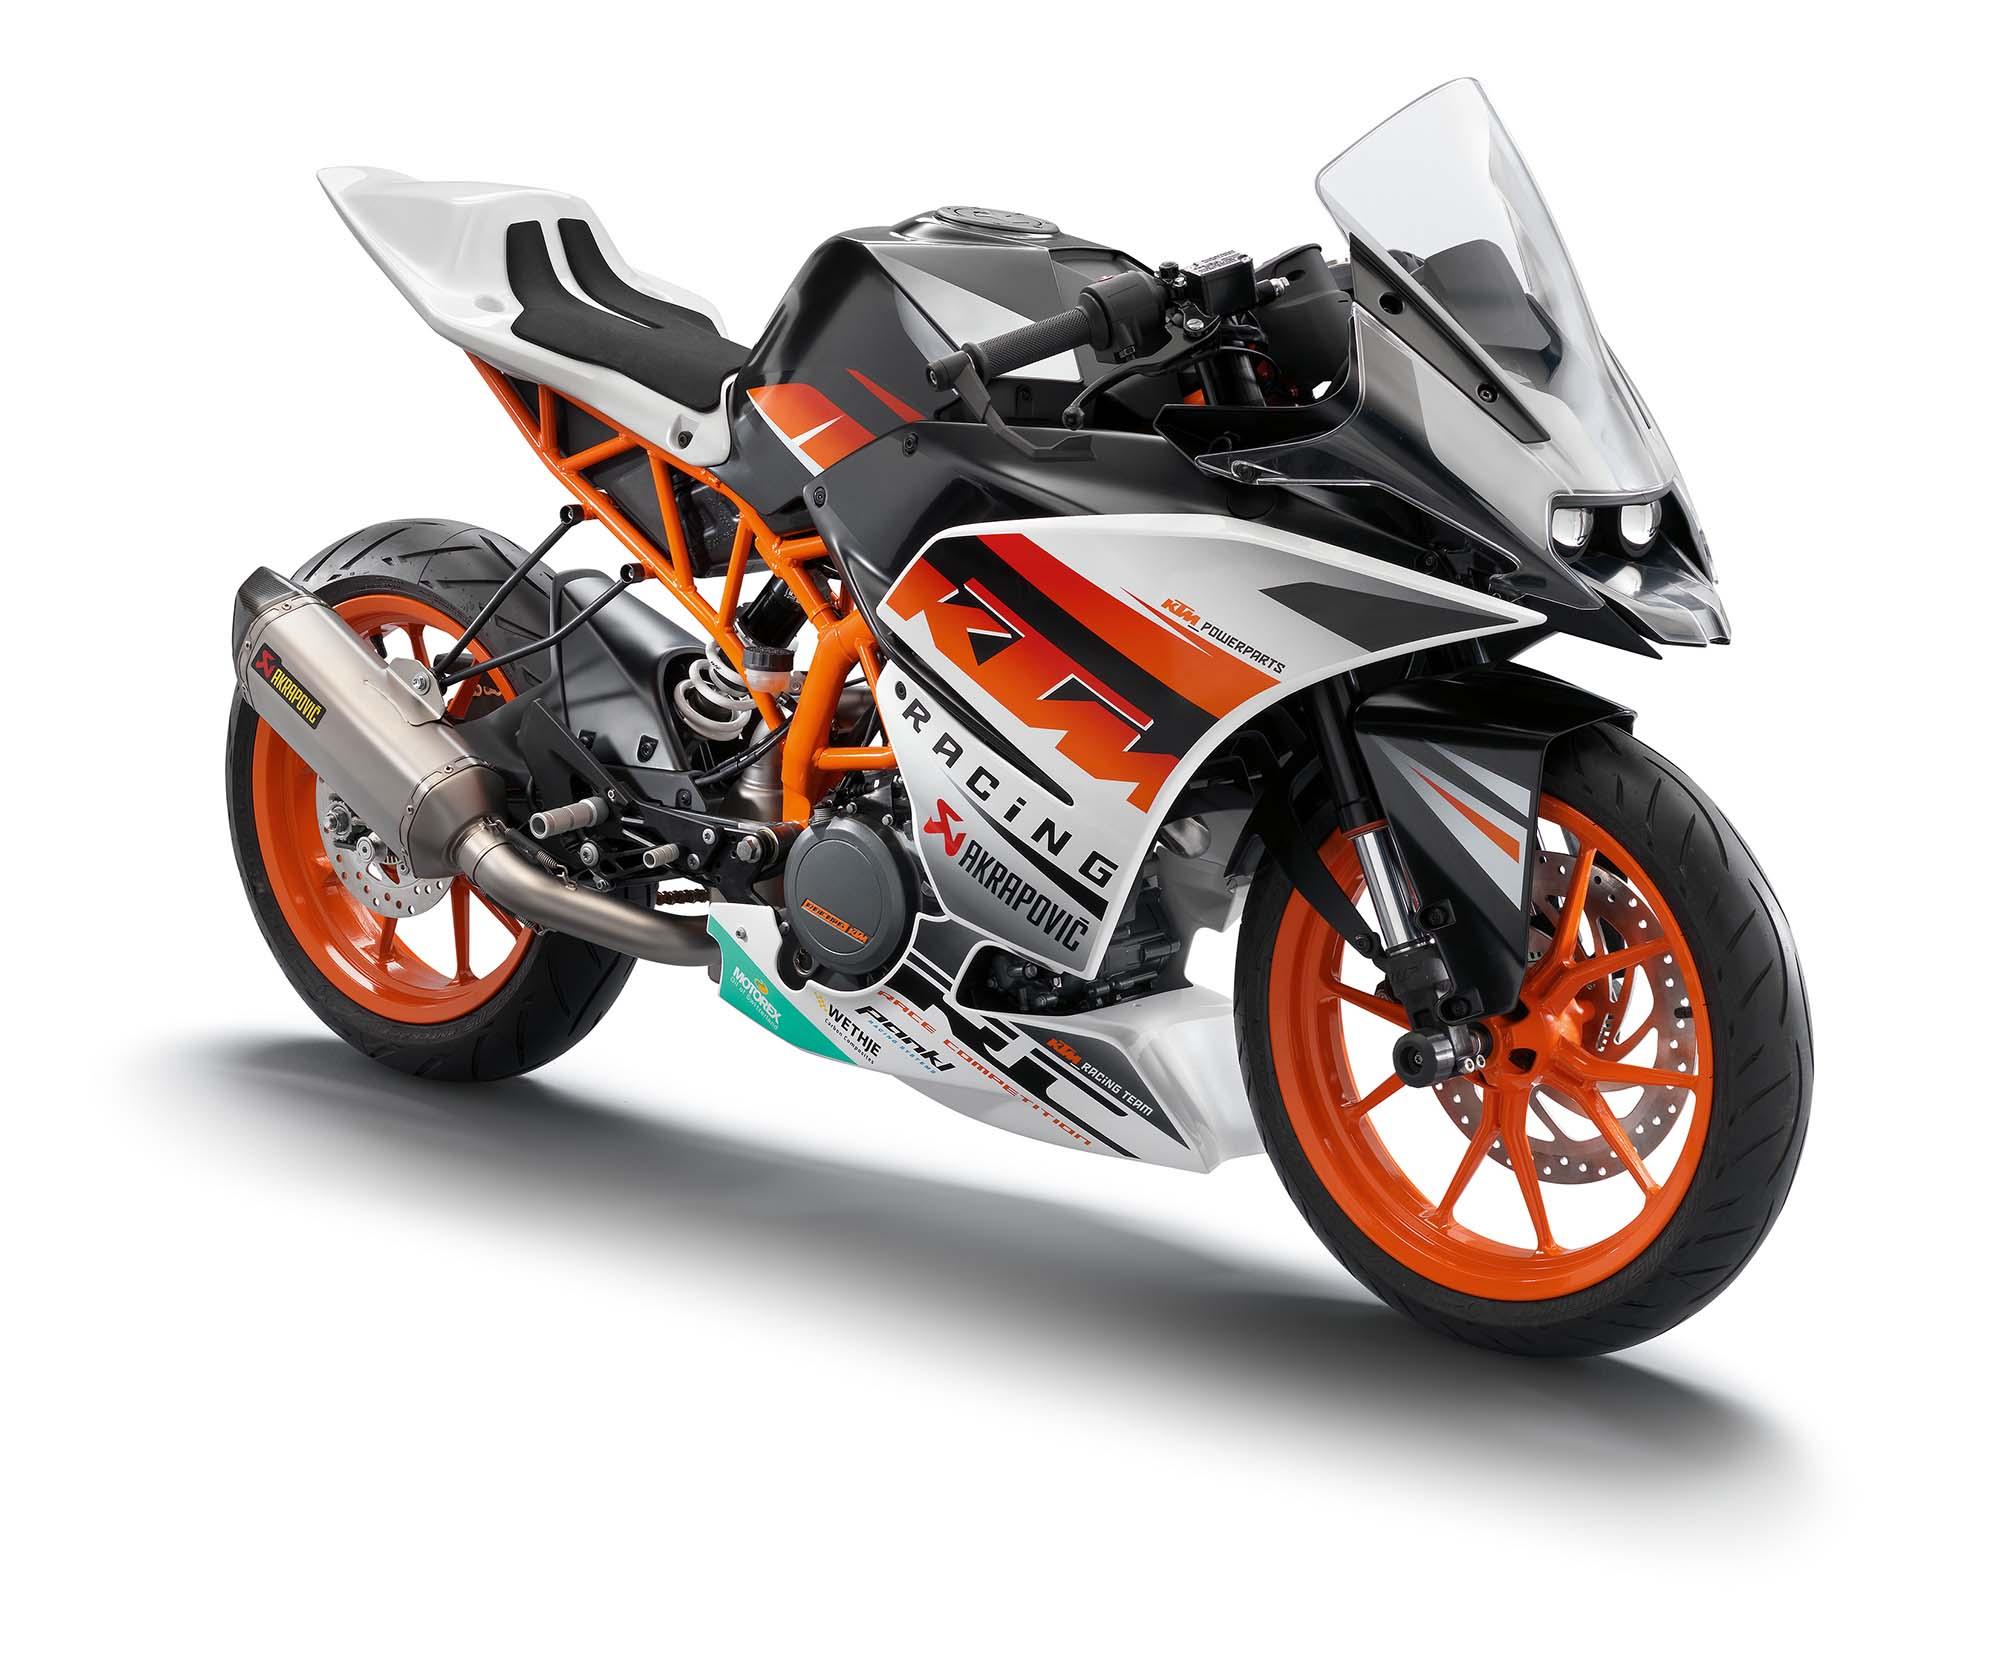 ktm rc390 coming to america - $5,499 - asphalt & rubber